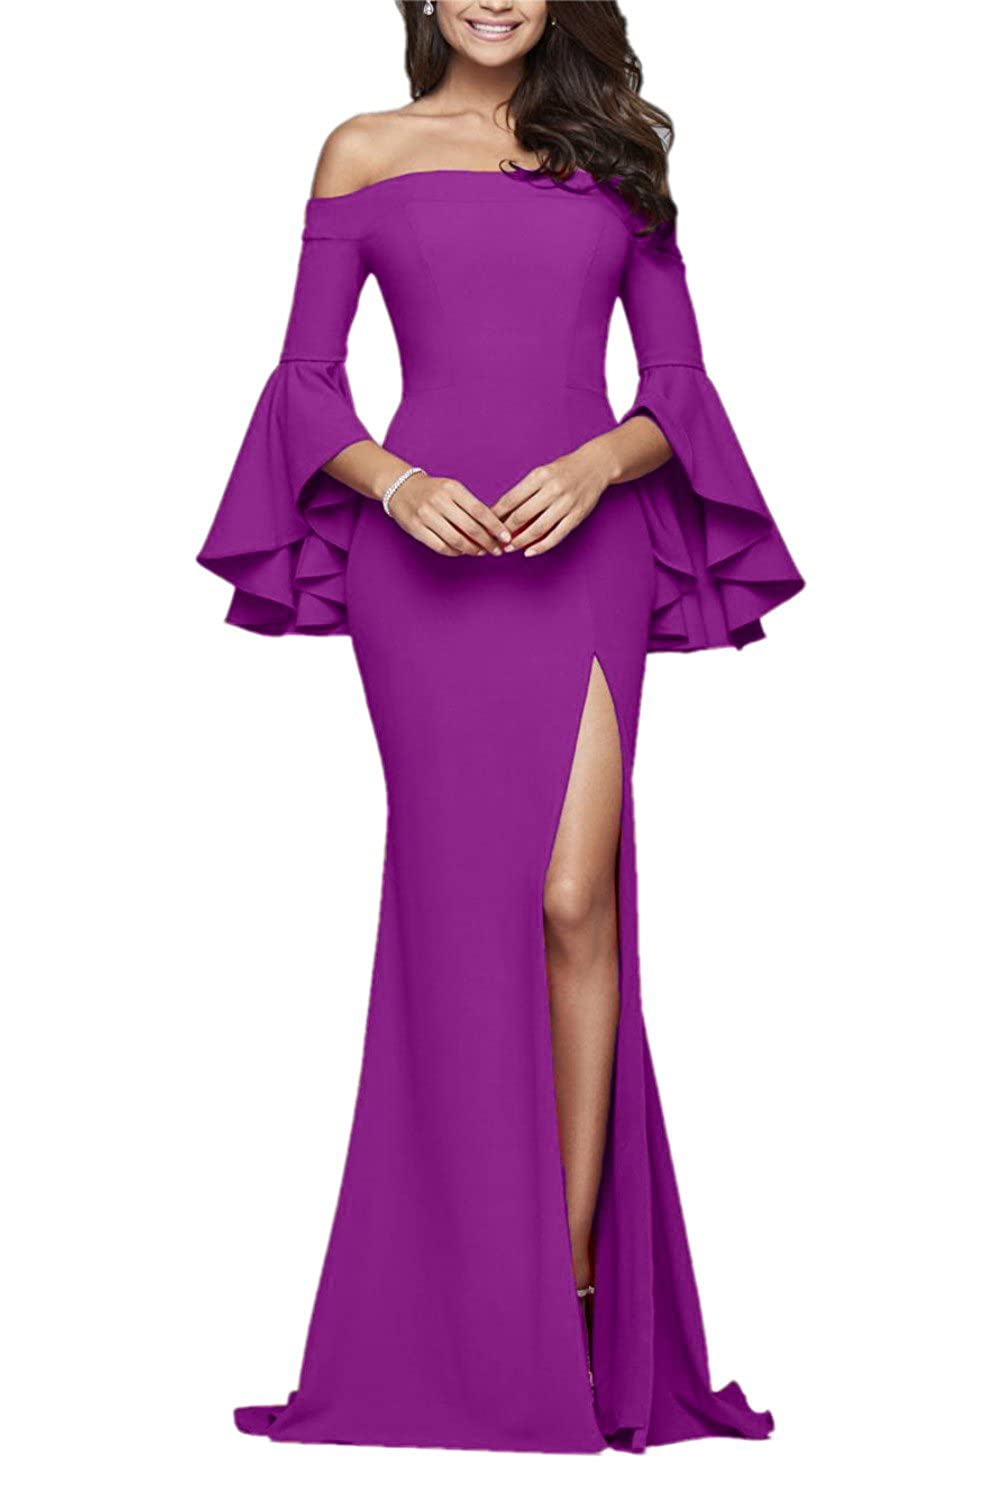 Purple Sweet Bridal Women's Butterfly Sleeves Evening Gown Side Slit Long Prom Dress